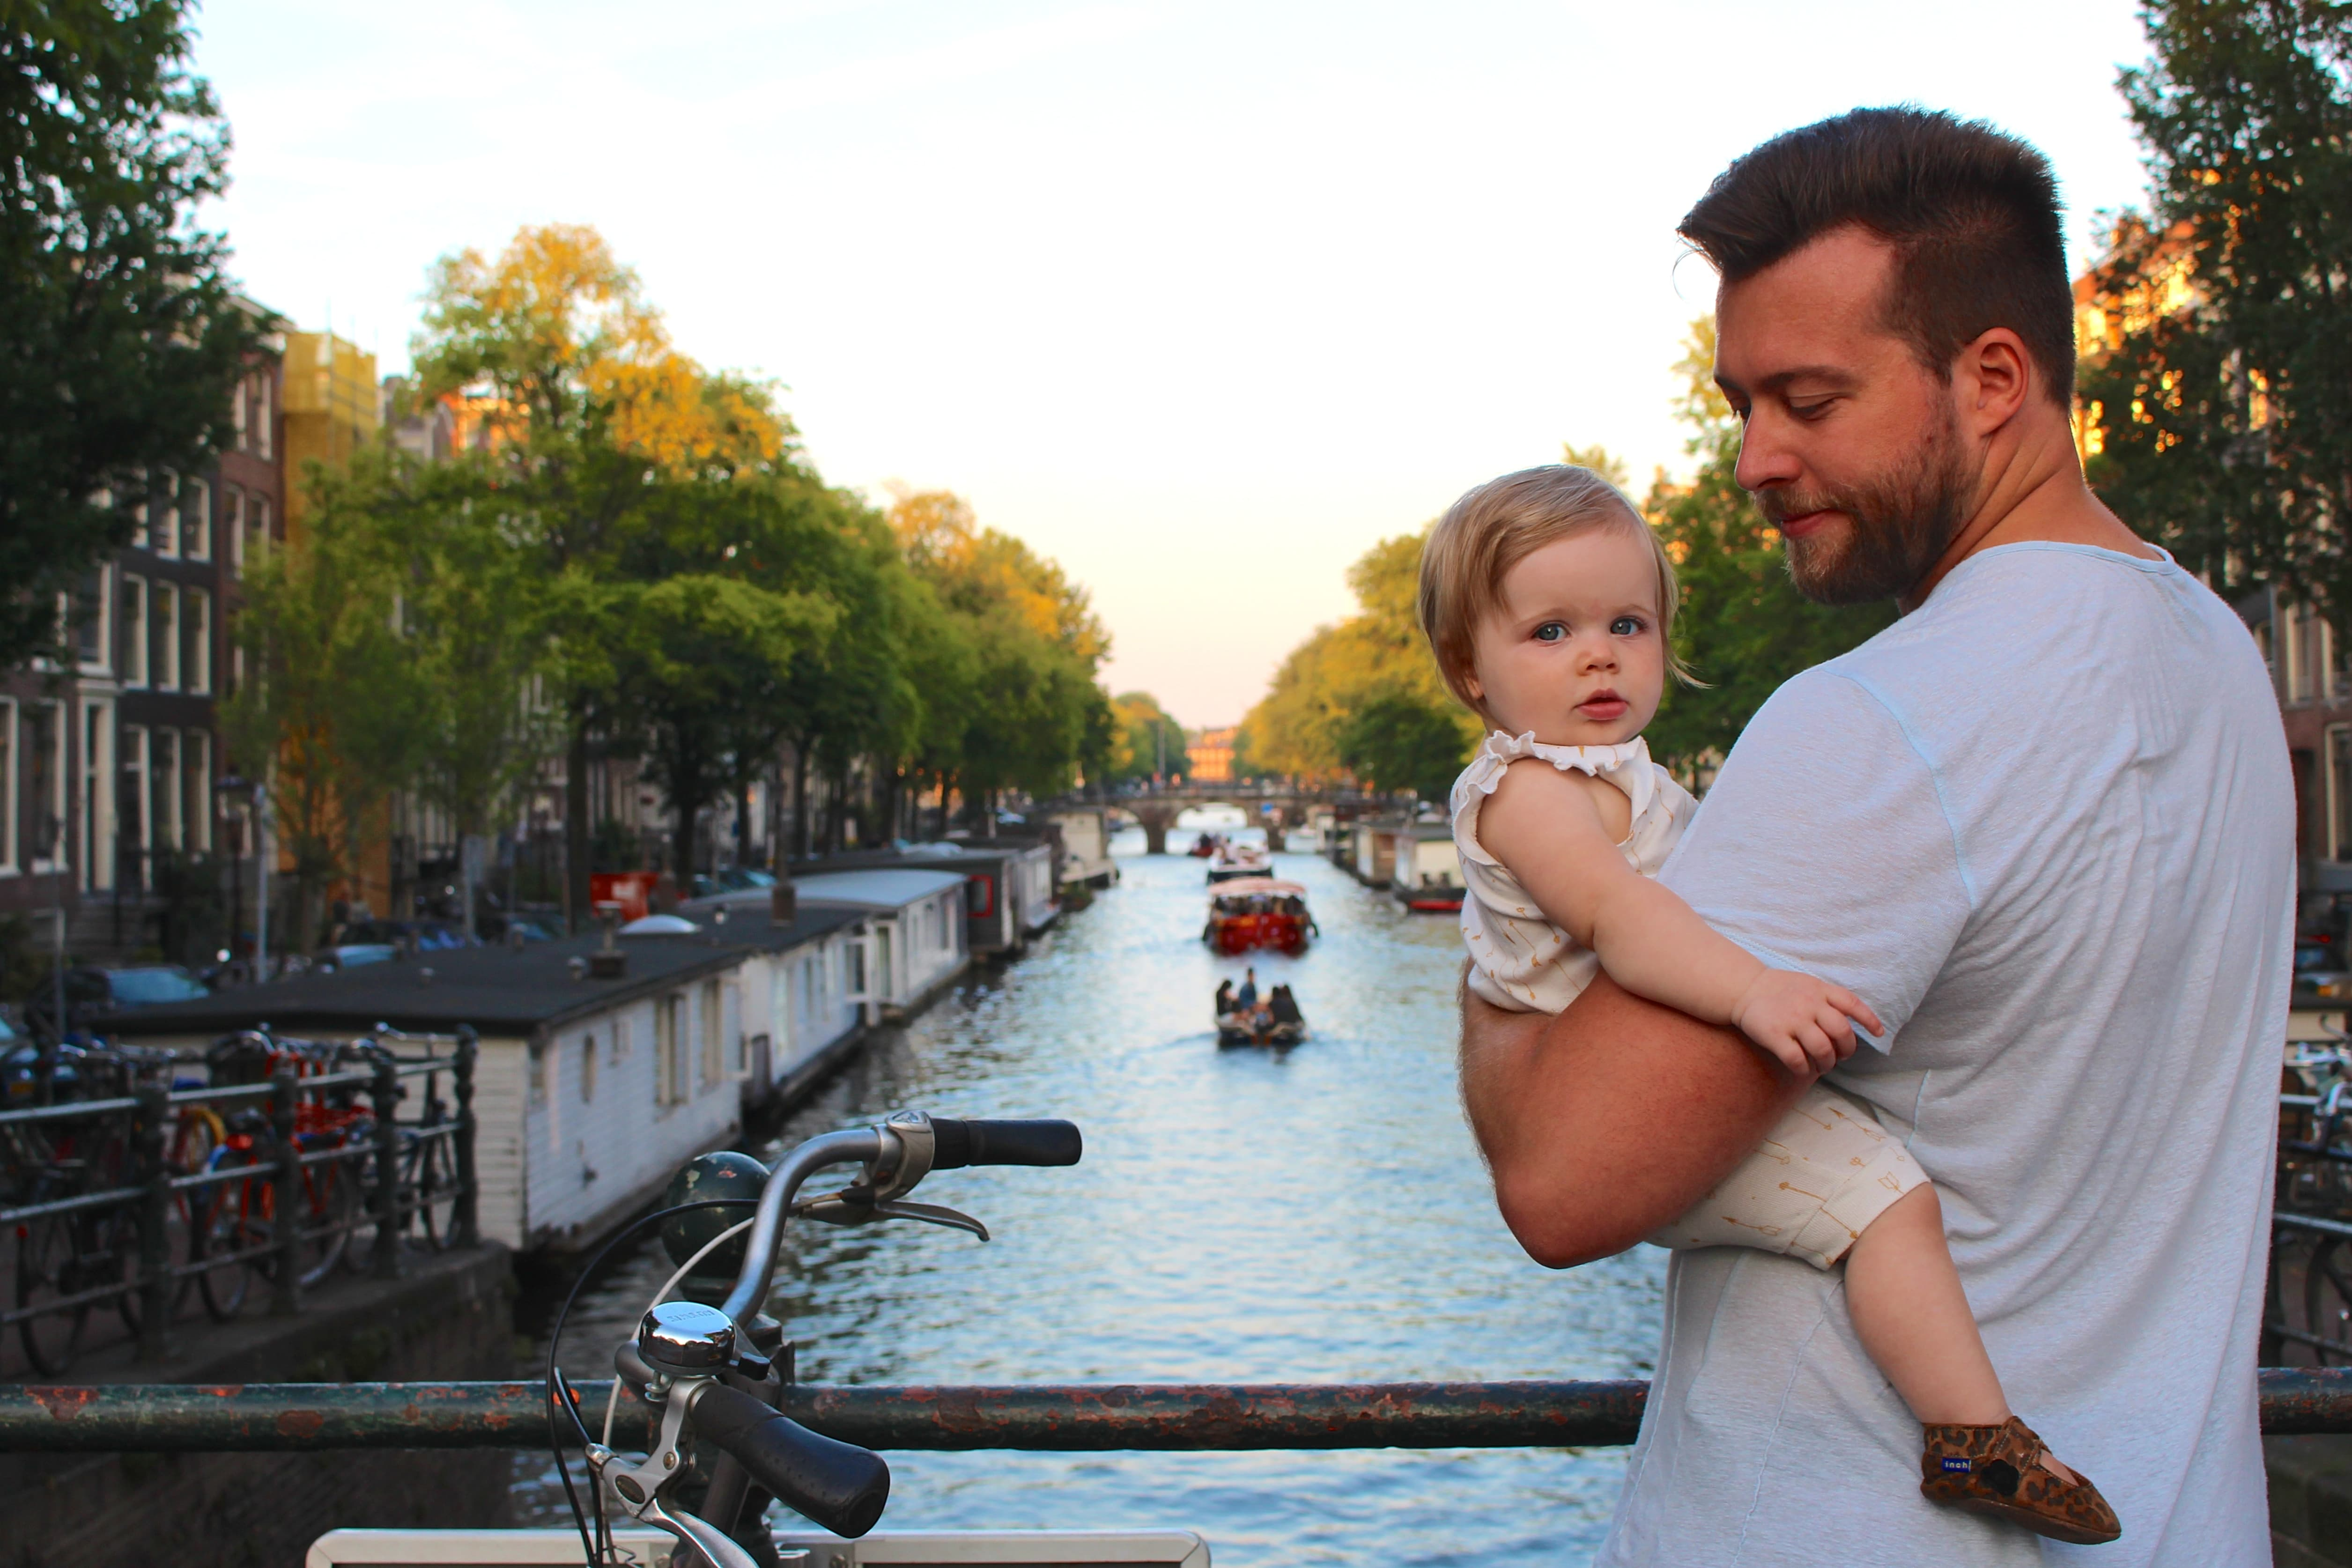 amsterdam canal baby travel